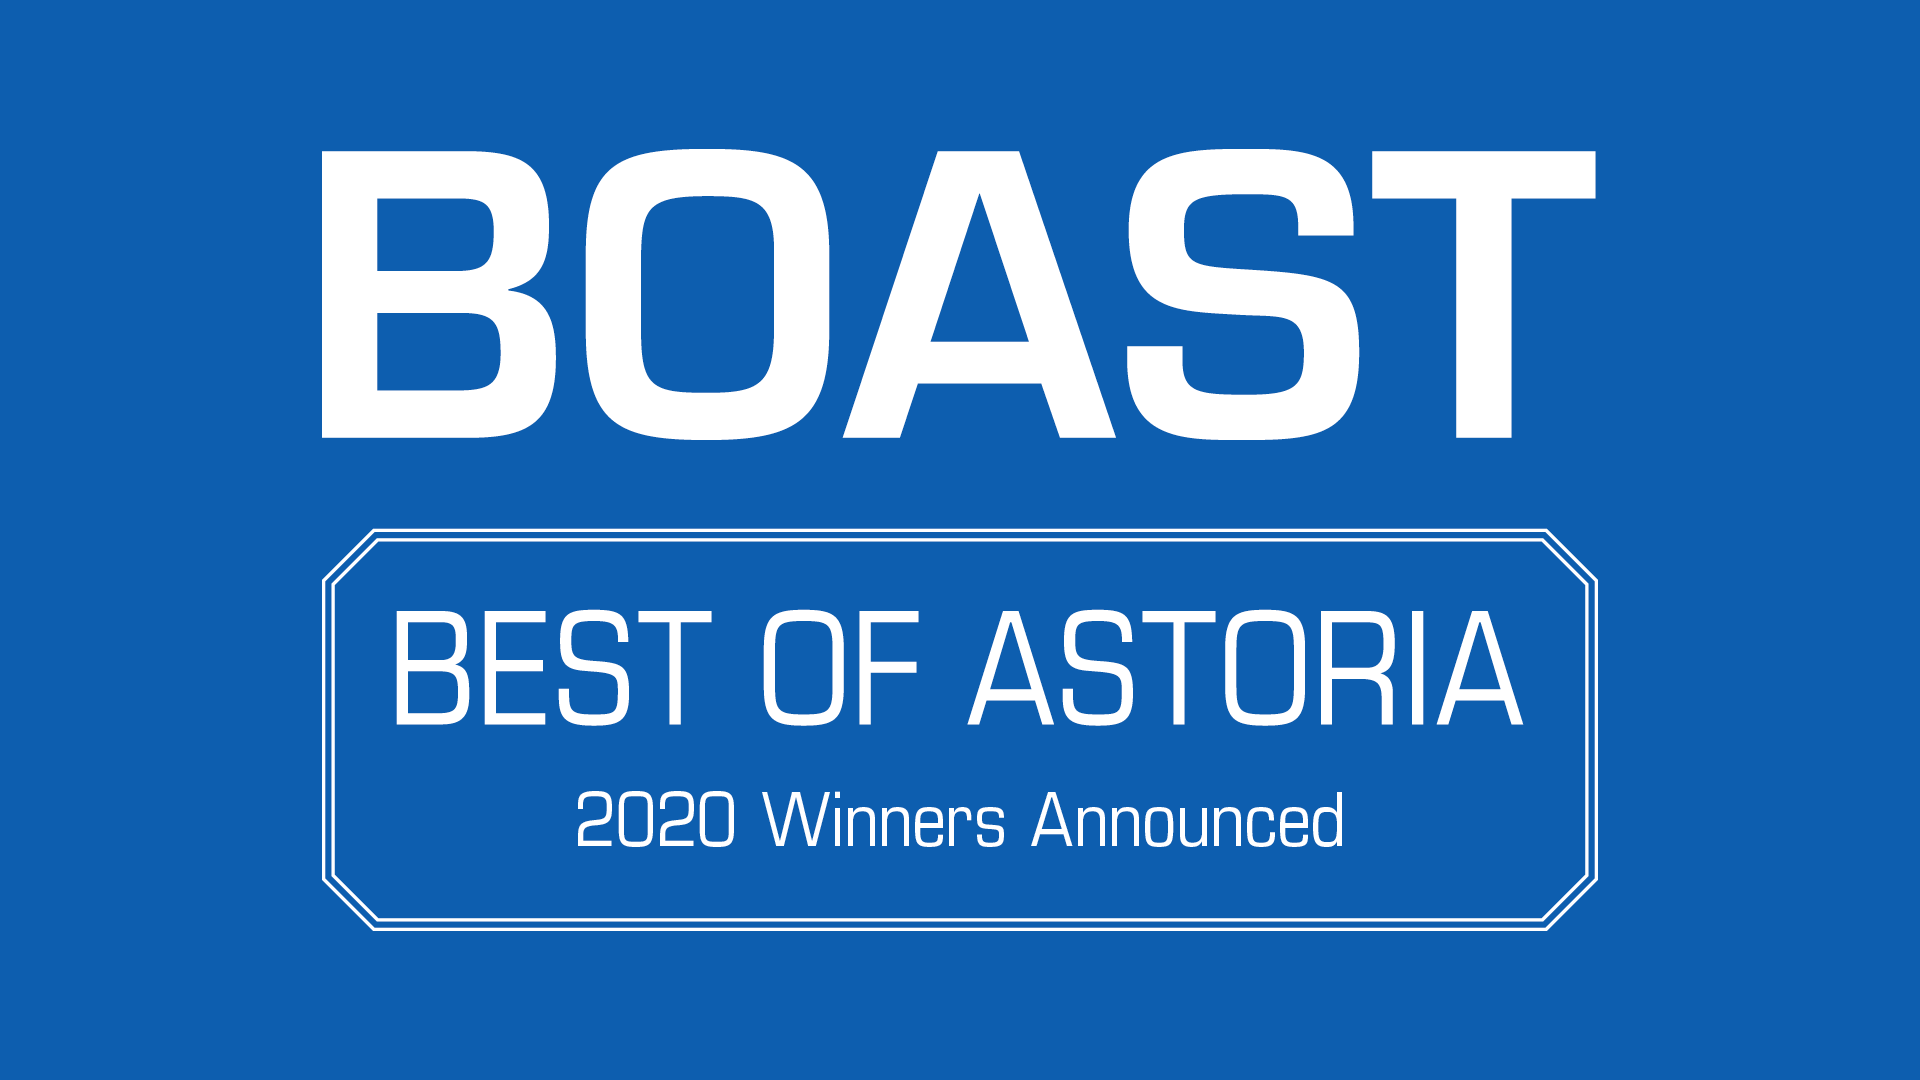 BOAST-2020-Winner-screen_v2_7